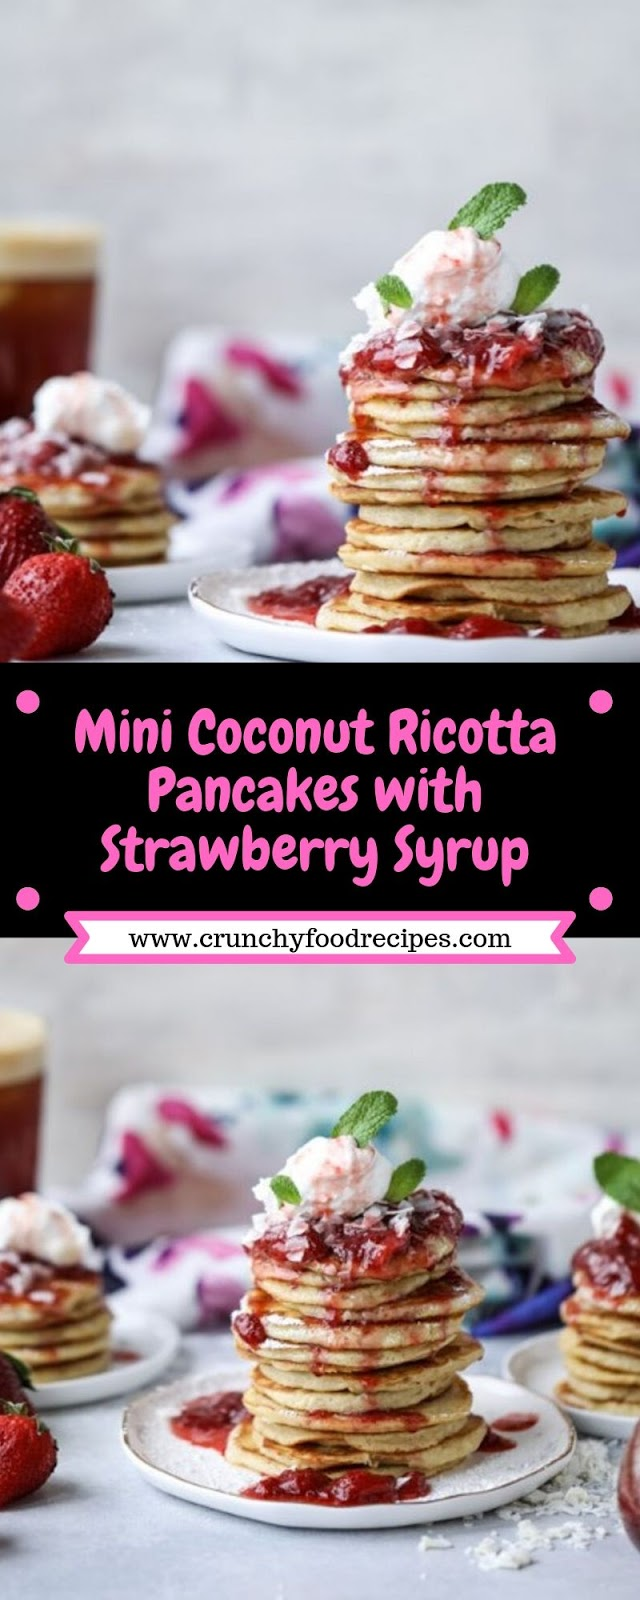 Mini Coconut Ricotta Pancakes with Strawberry Syrup